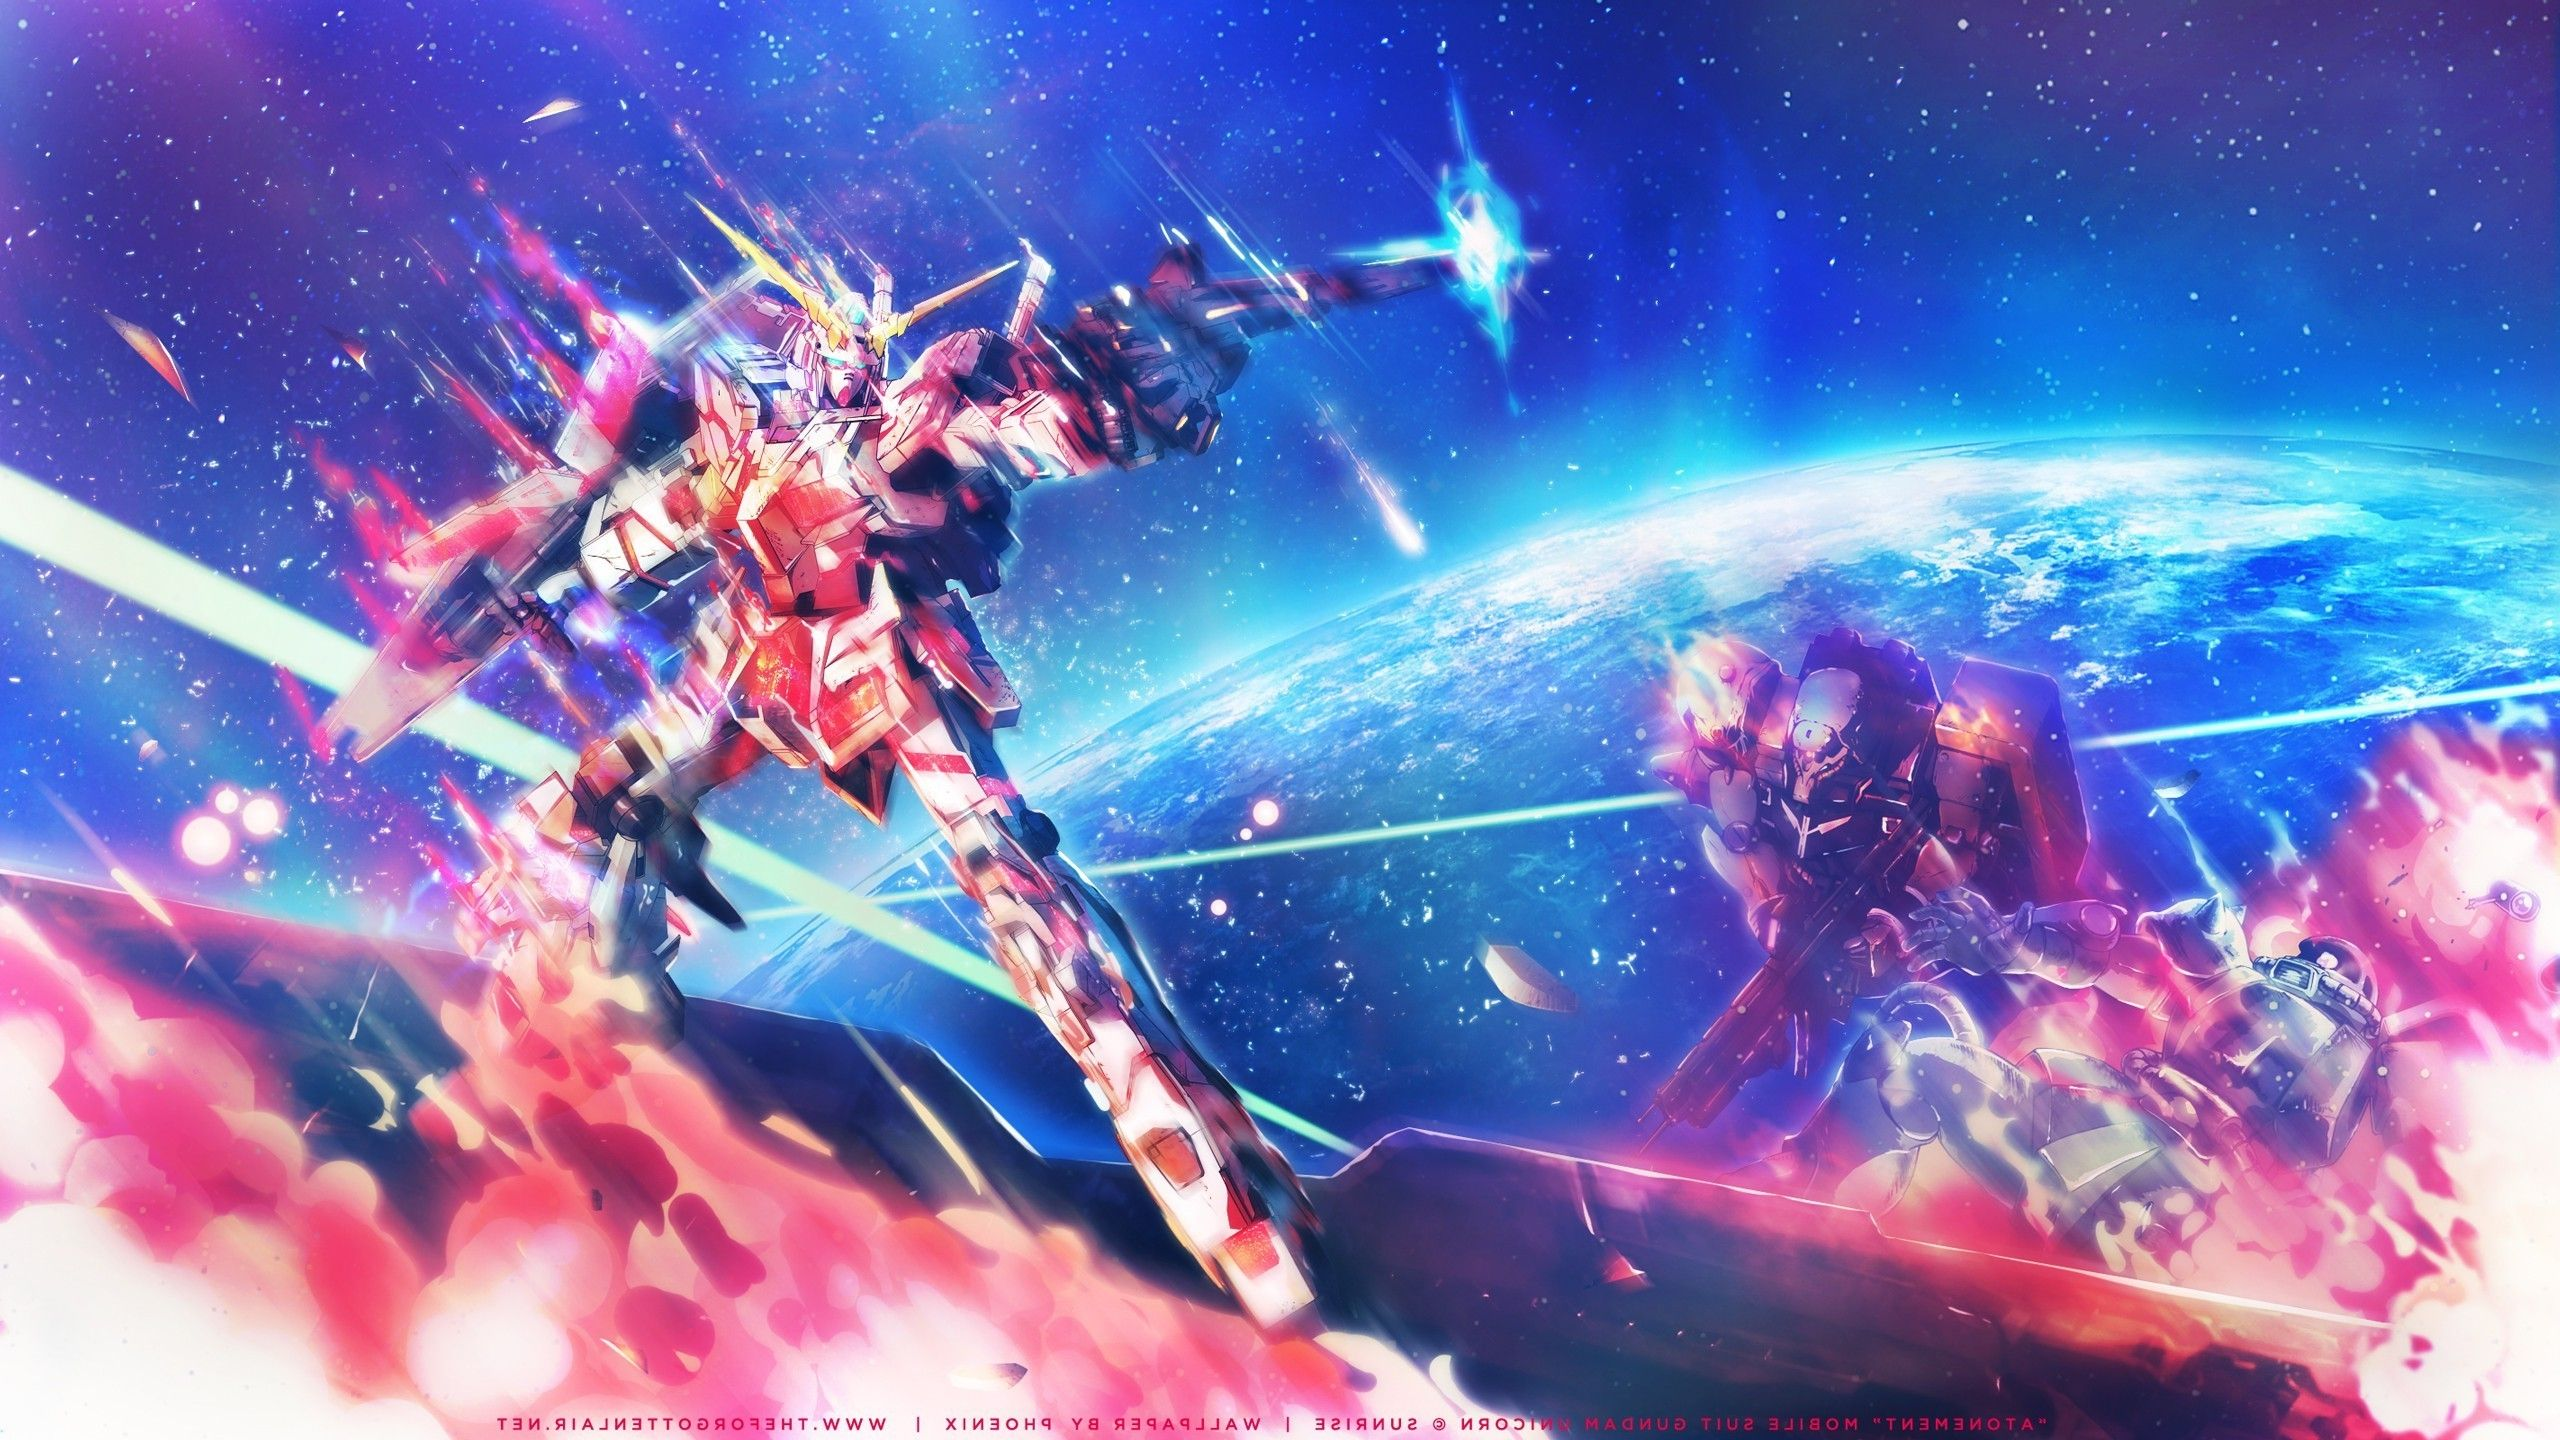 2560x1440 Mobile Suit Gundam Unicorn Mech Mobile Suit Gundam Gundam Wallpapers Hd Desktop And Mobile Unicorn Wallpaper Anime Wallpaper Gundam Wallpapers